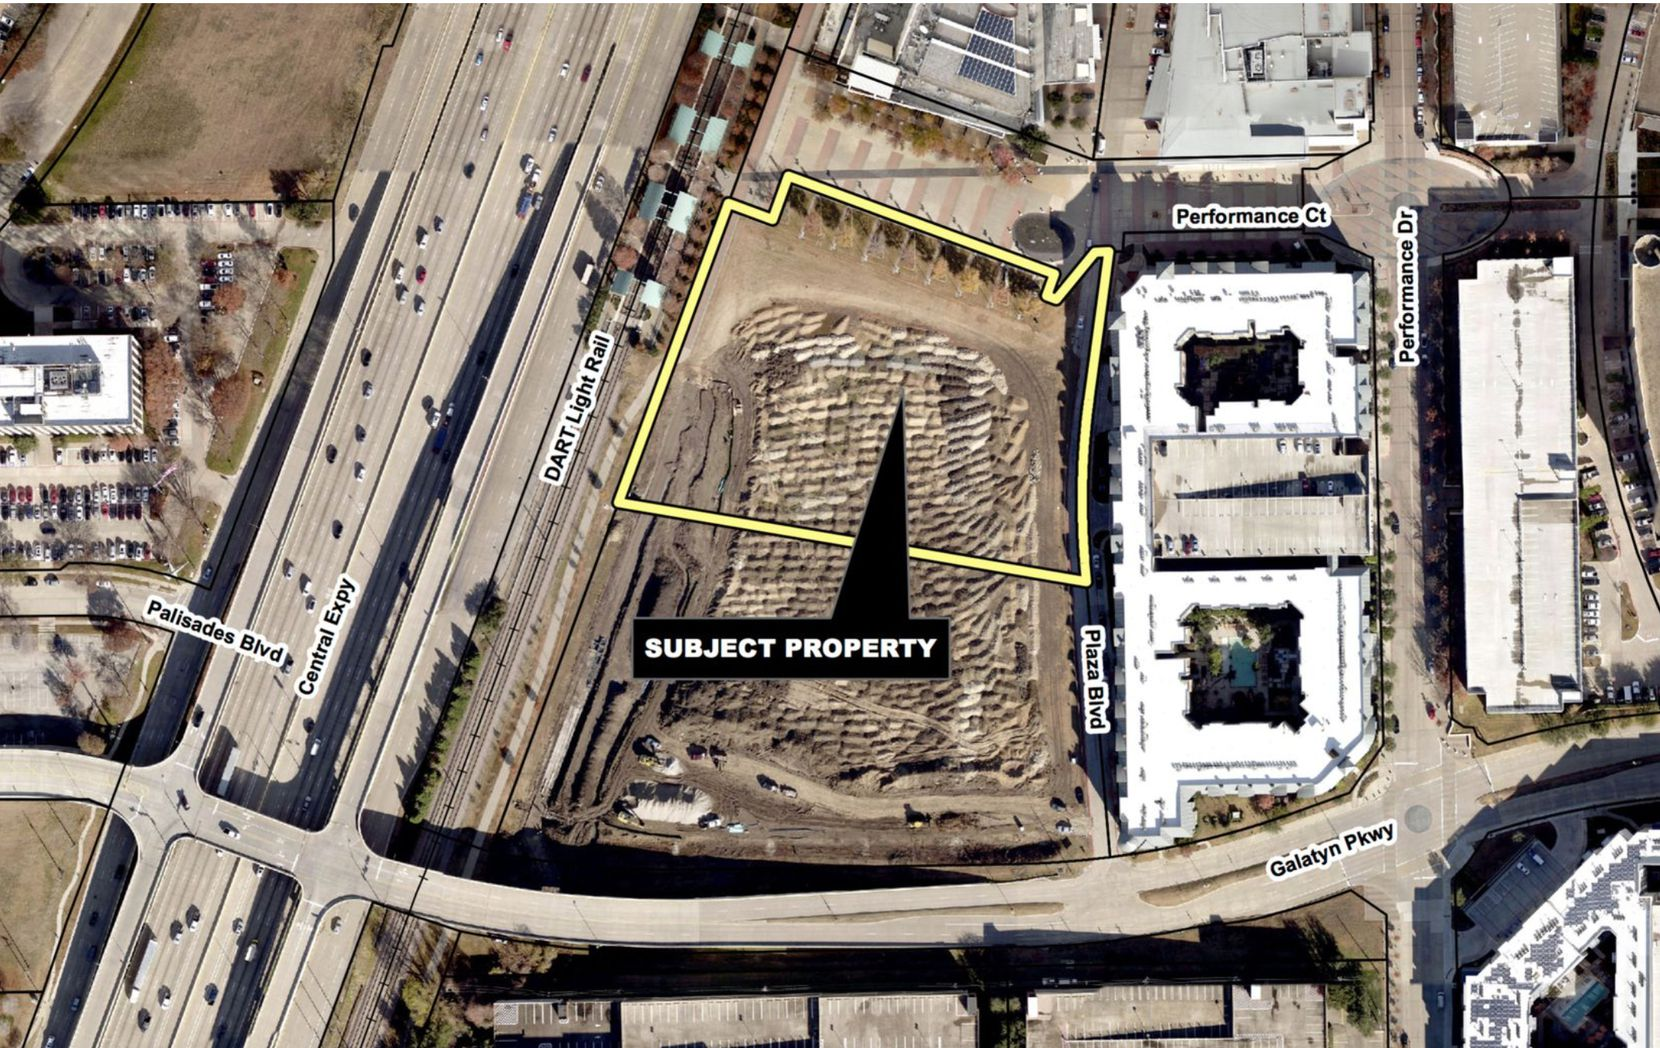 The Legacy Partners development site is between DART's Galatyn Park rail station and the Renaissance Hotel.